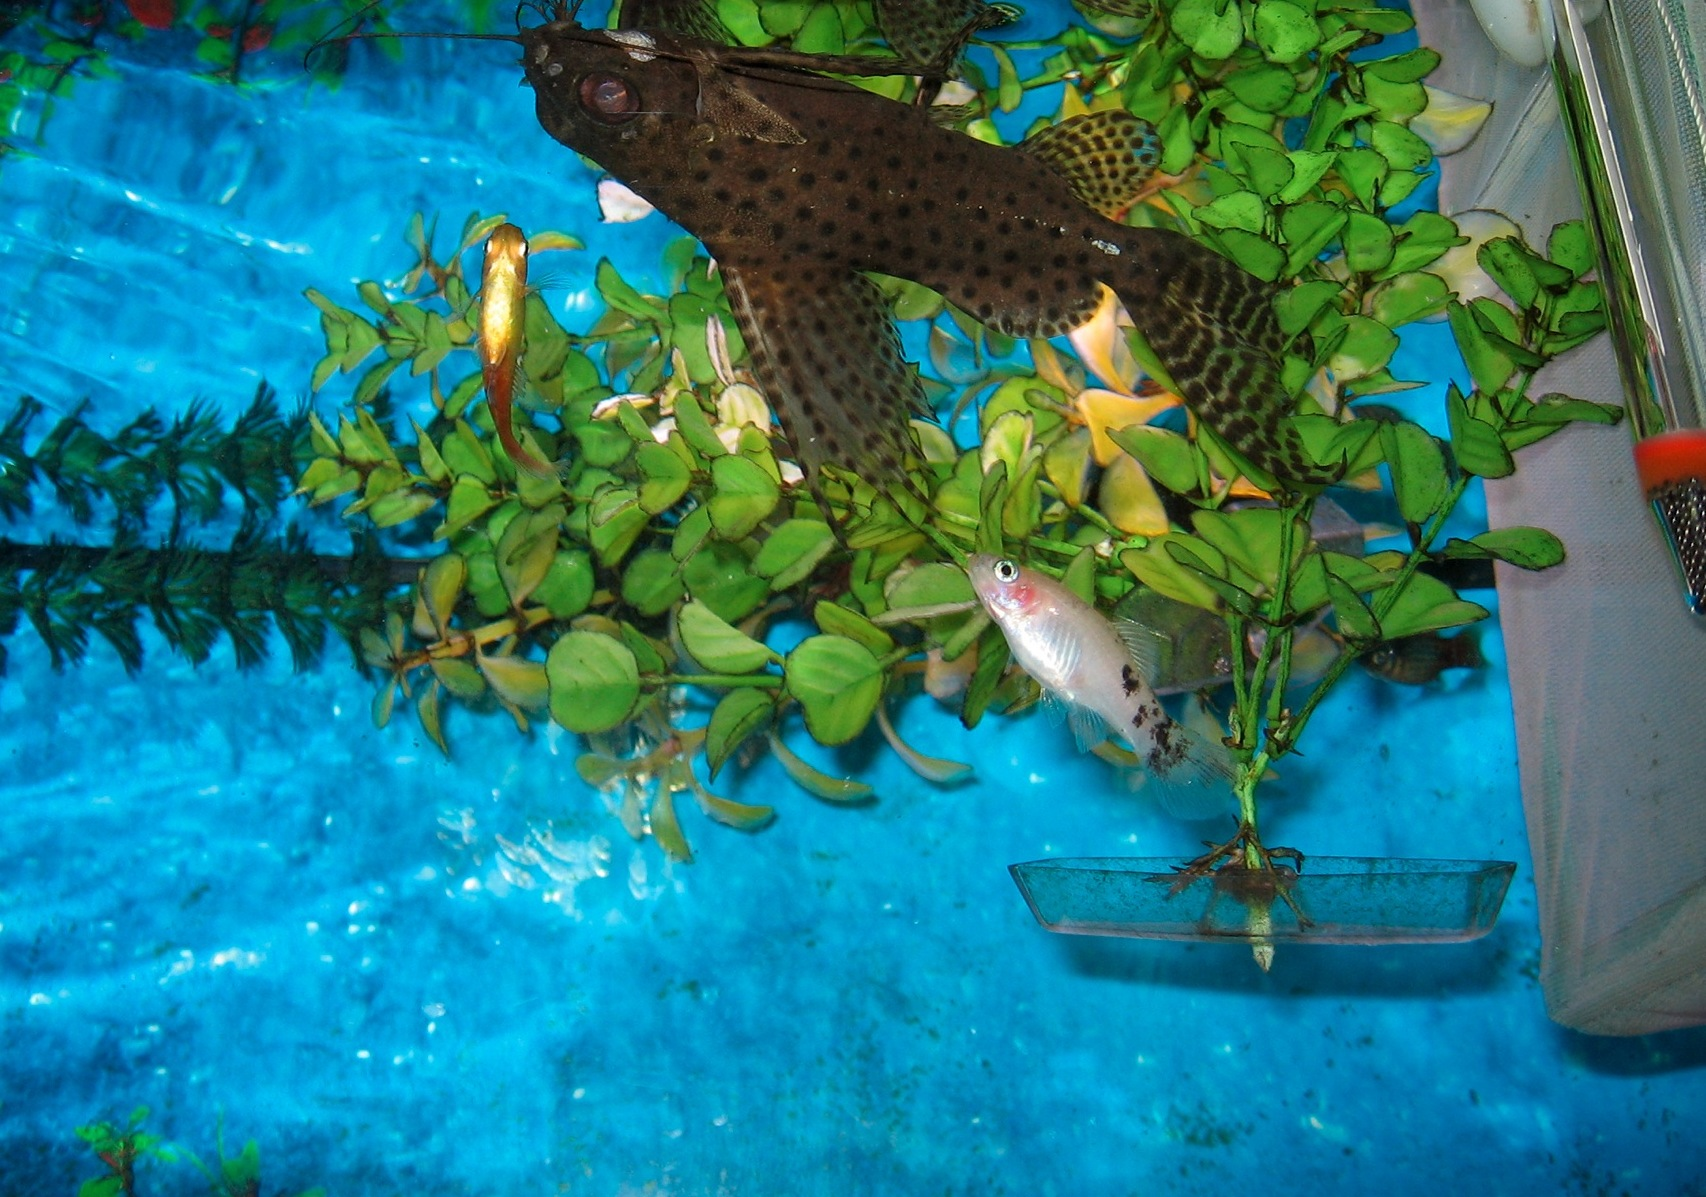 File:Freatherfin Squeaker with Southern Platyfish.jpg - Wikimedia ...